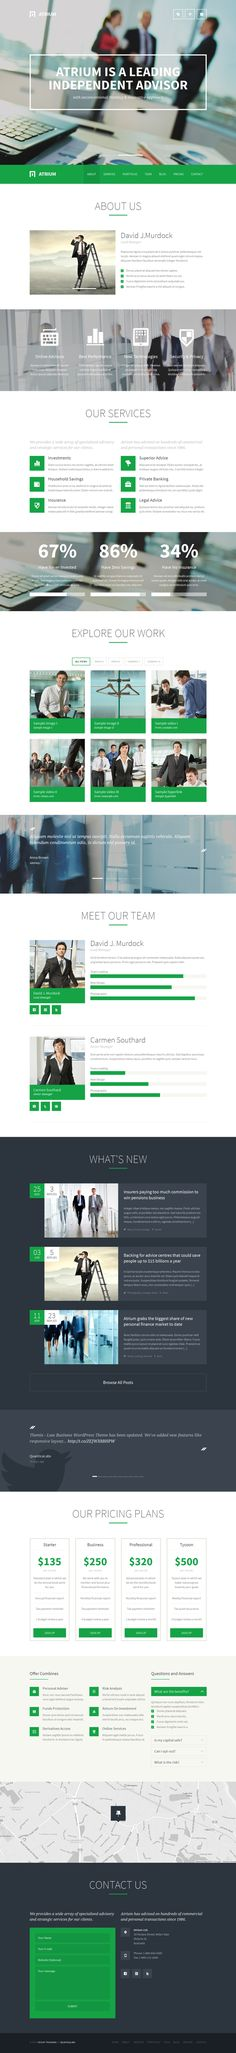 Atrium - Responsive Corporate One Page Template by QuanticaLabs